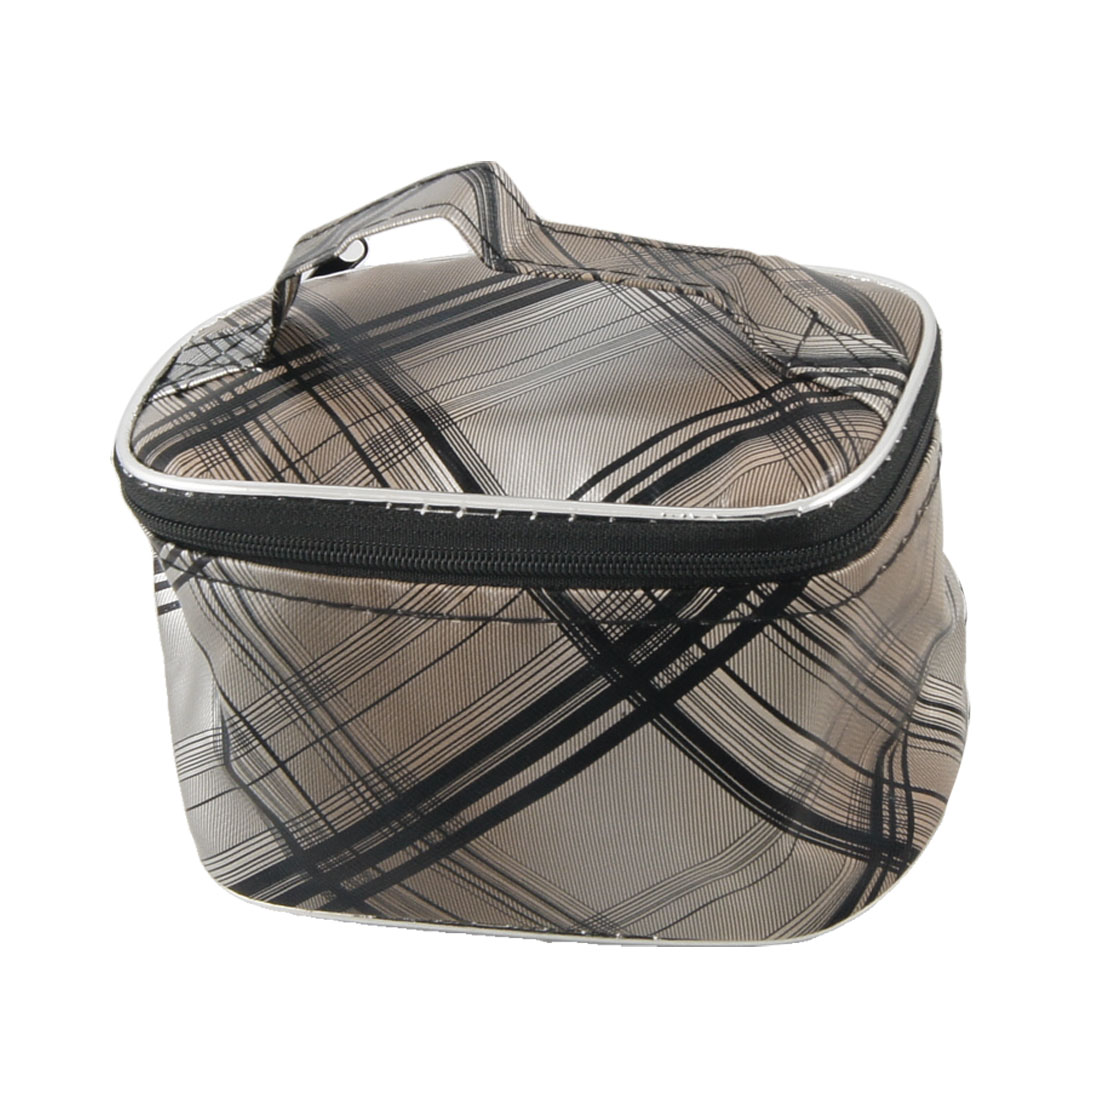 Travel Plaid Printed Black Dark Gray Zip up Makeup Cosmetic Container